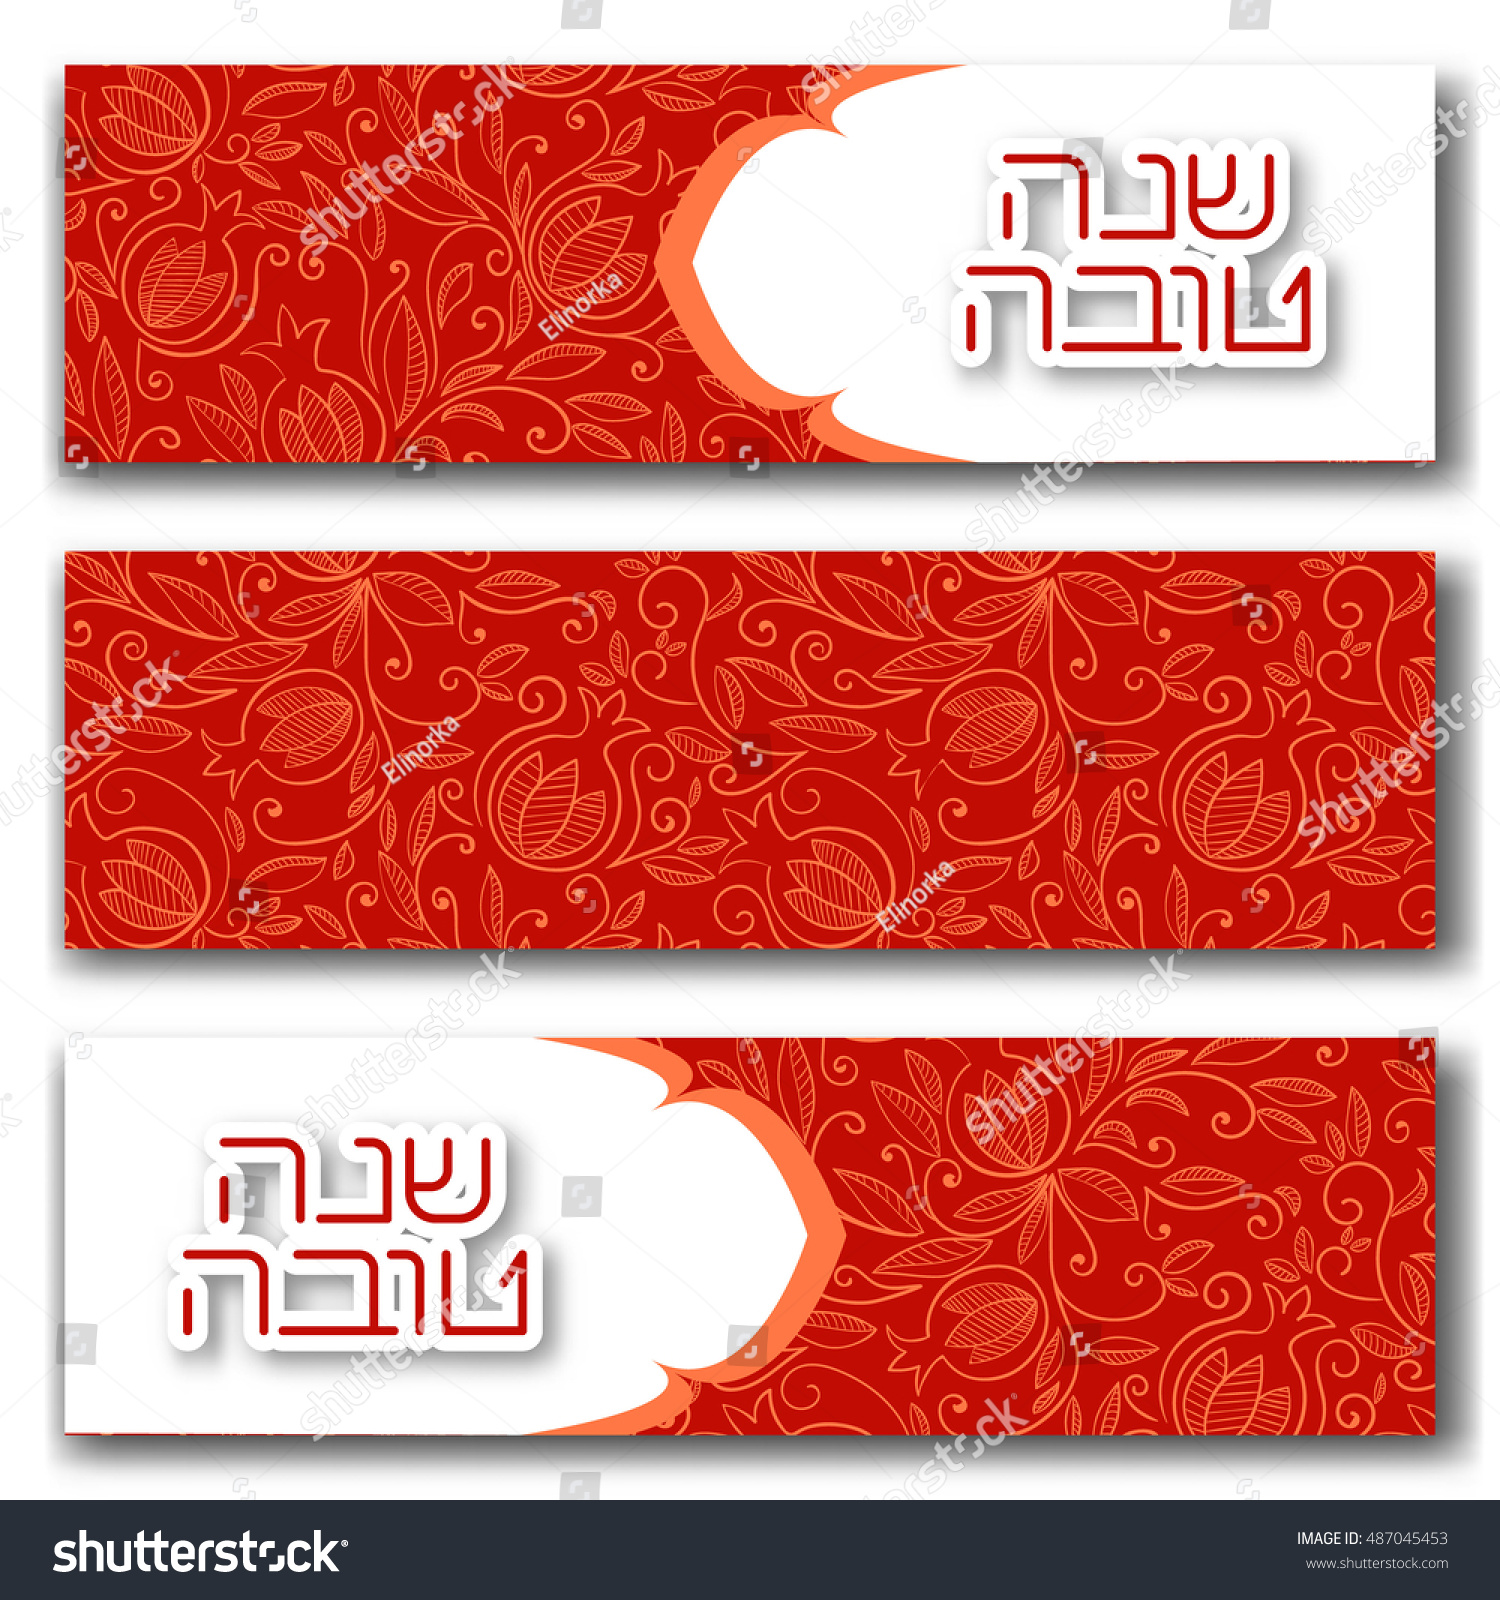 Pomegranate banners set for Rosh Hashanah (Jewish new year). \